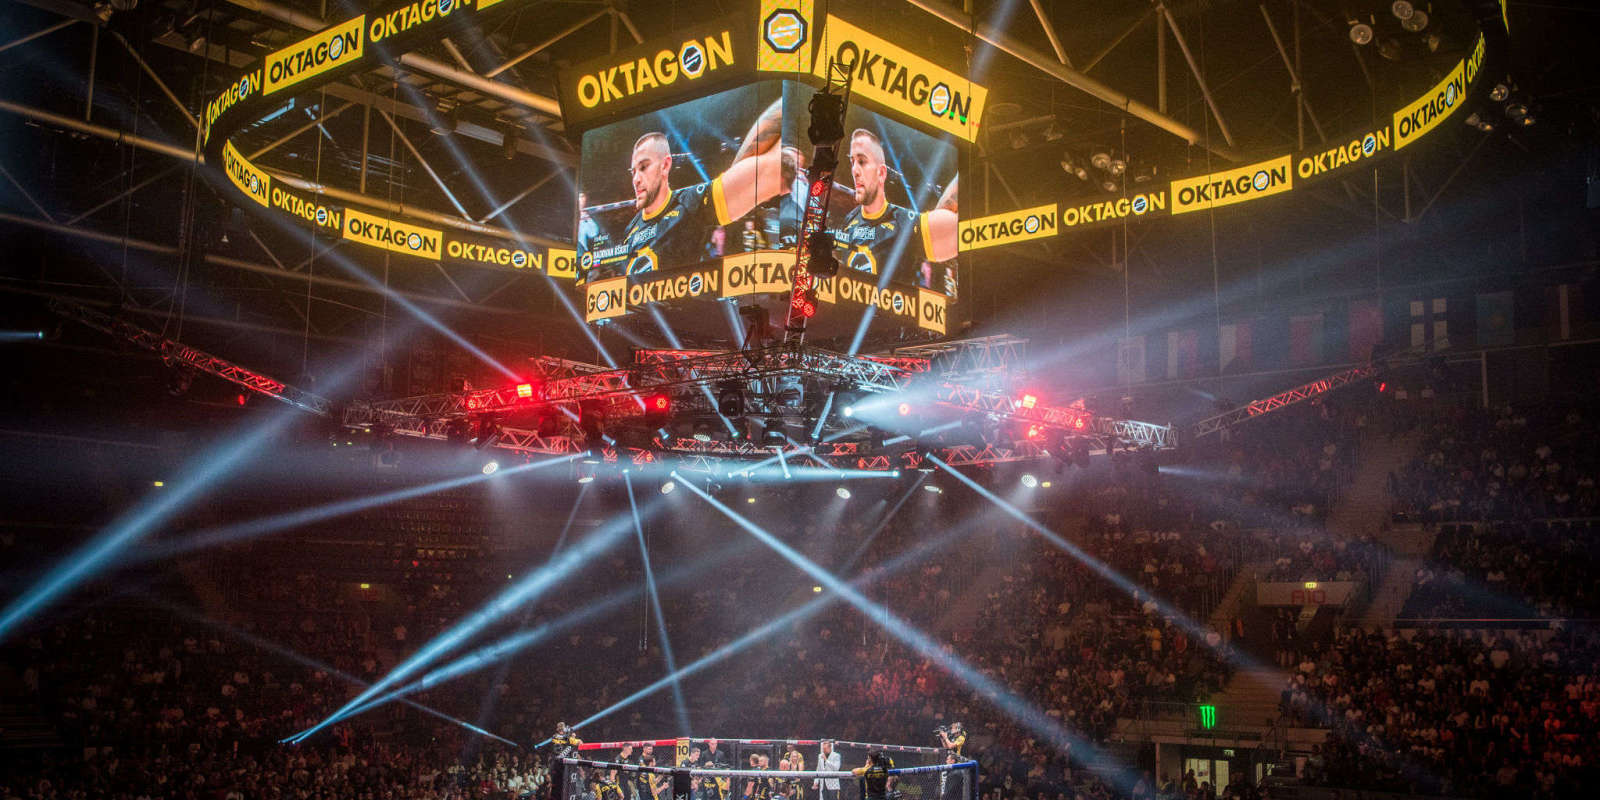 Slovak MMA Tournament Oktagon 9 taking place in Bratislava